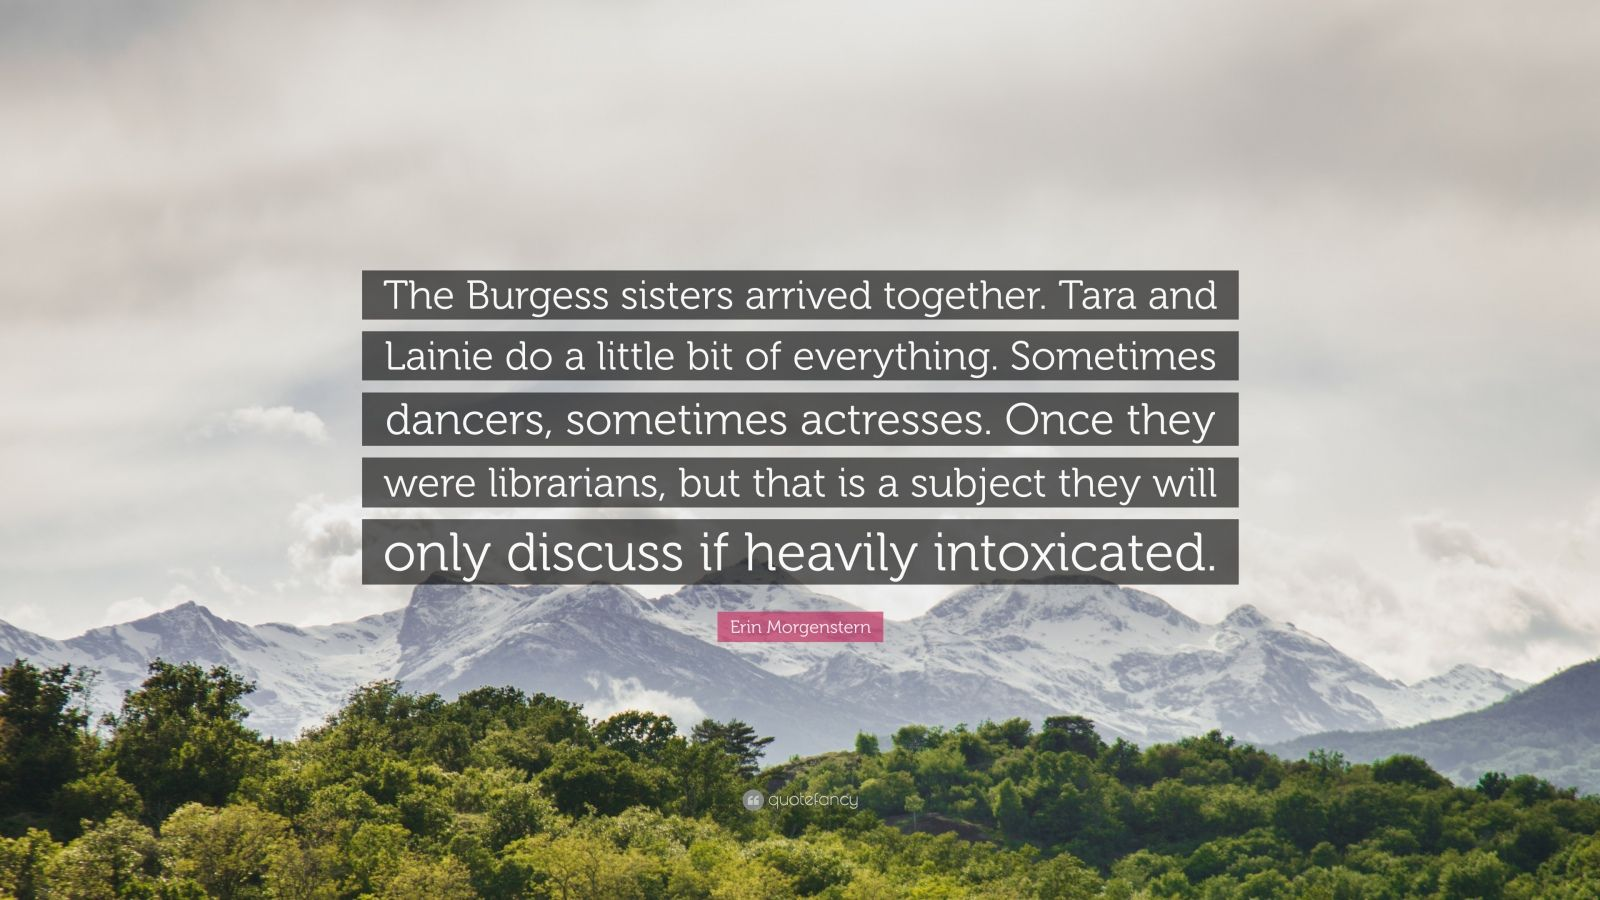 """Erin Morgenstern Quote: """"The Burgess sisters arrived together. Tara and Lainie do a little bit of everything. Sometimes dancers, sometimes actresses. Once they were librarians, but that is a subject they will only discuss if heavily intoxicated."""""""